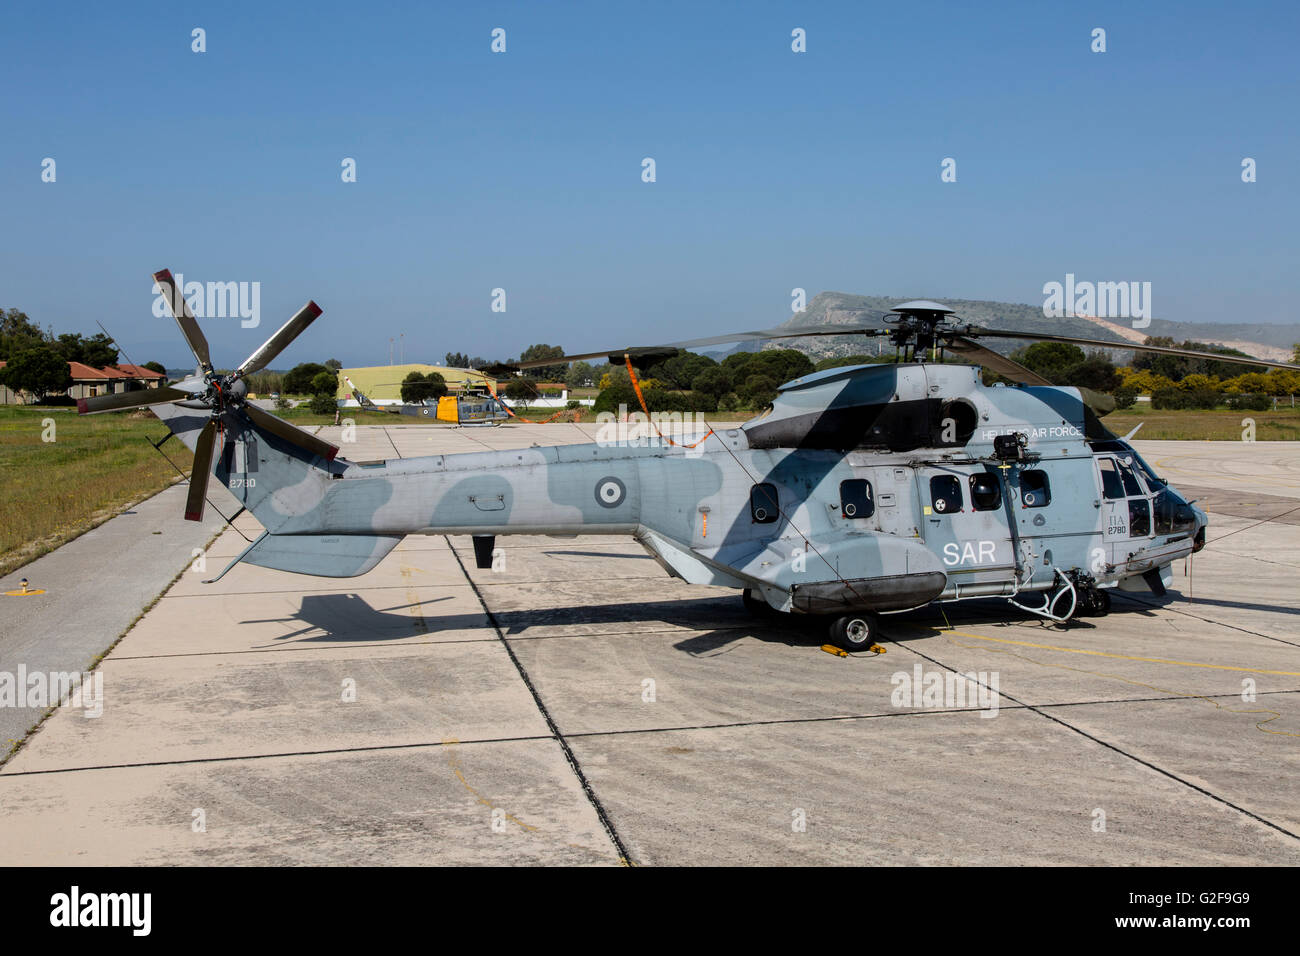 A Hellenic Air Force Eurocopter Super Puma search and rescue helicopter e6d6c081297